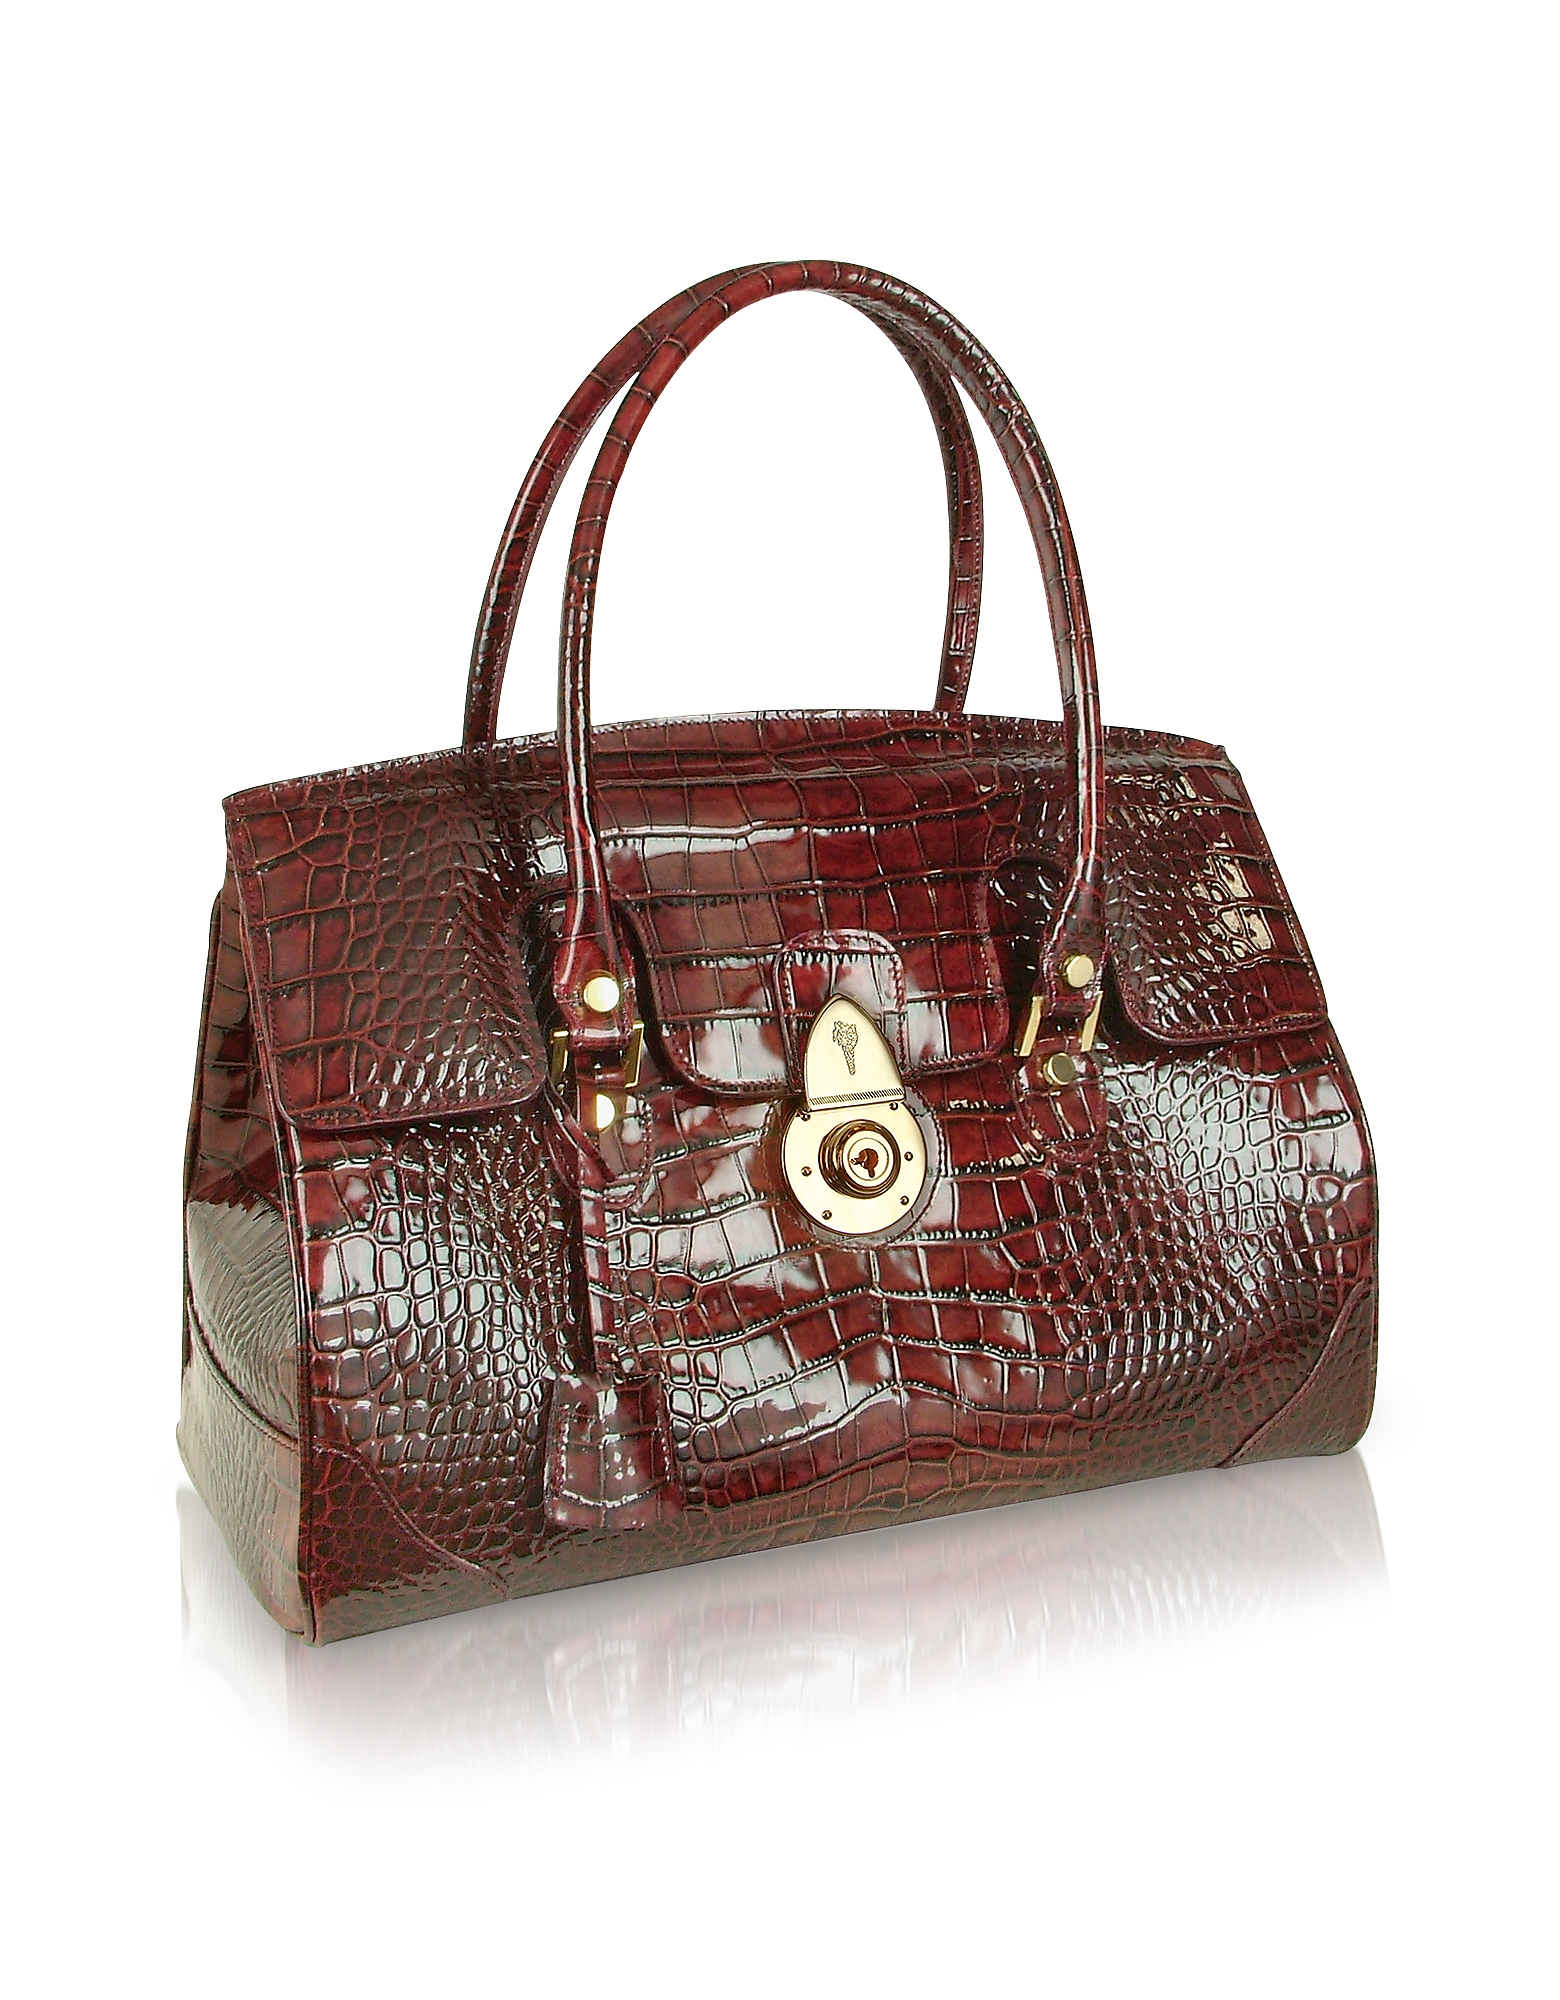 Ruby Red Croco Stamped Patent Leather Satchel Bag